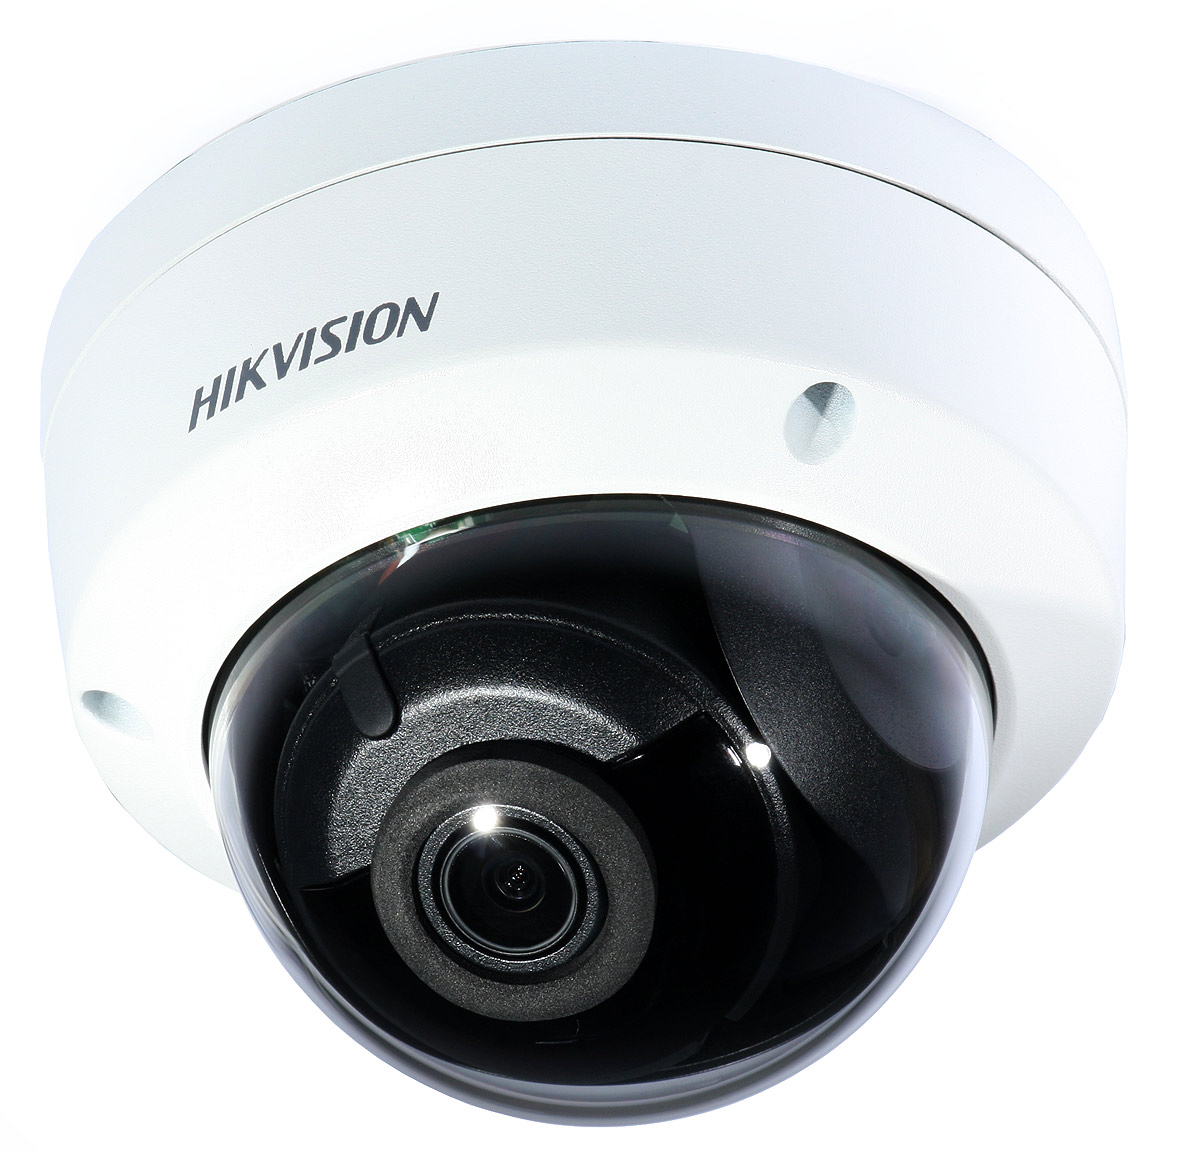 Ceiling IP Camera: Hikvision DS-2CD2135FWD-I (3MP, 2 8mm, 0 005 lx